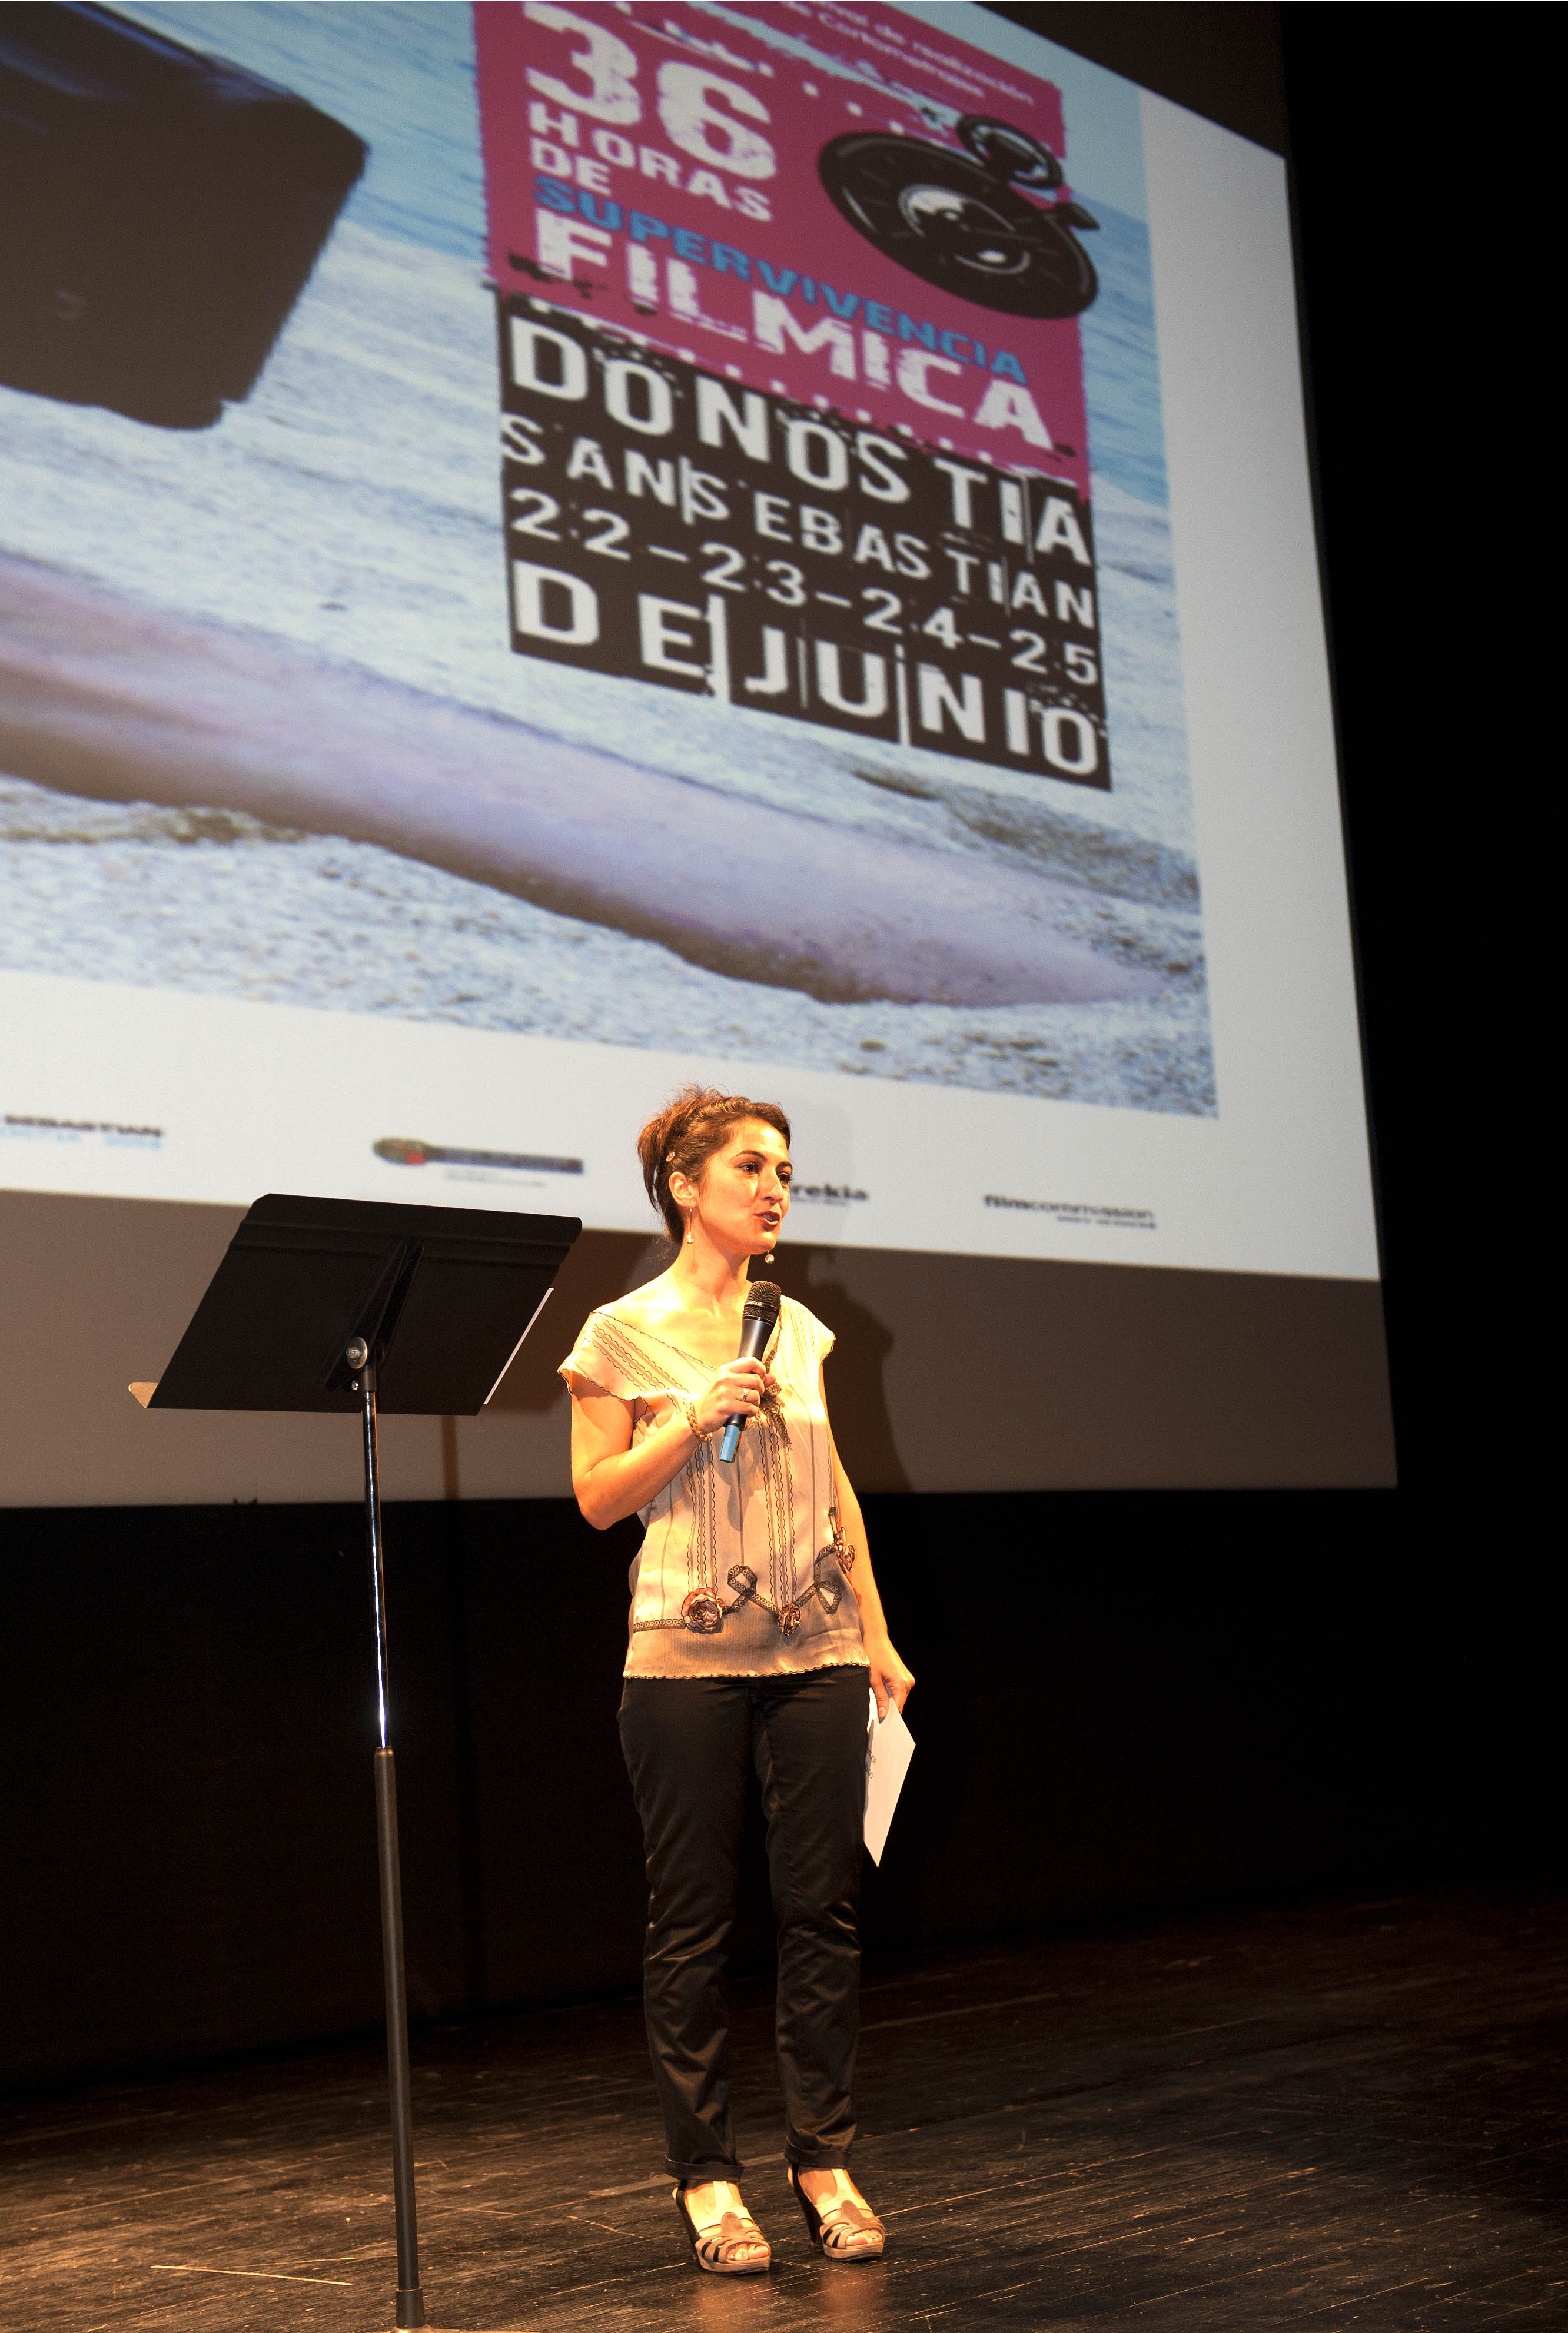 Los ojos de Laia (Laia's Eyes) and Uno de esos días de playa (One of Those Days at the Beach) win first and second prize at Cinemavip in San Sebastian